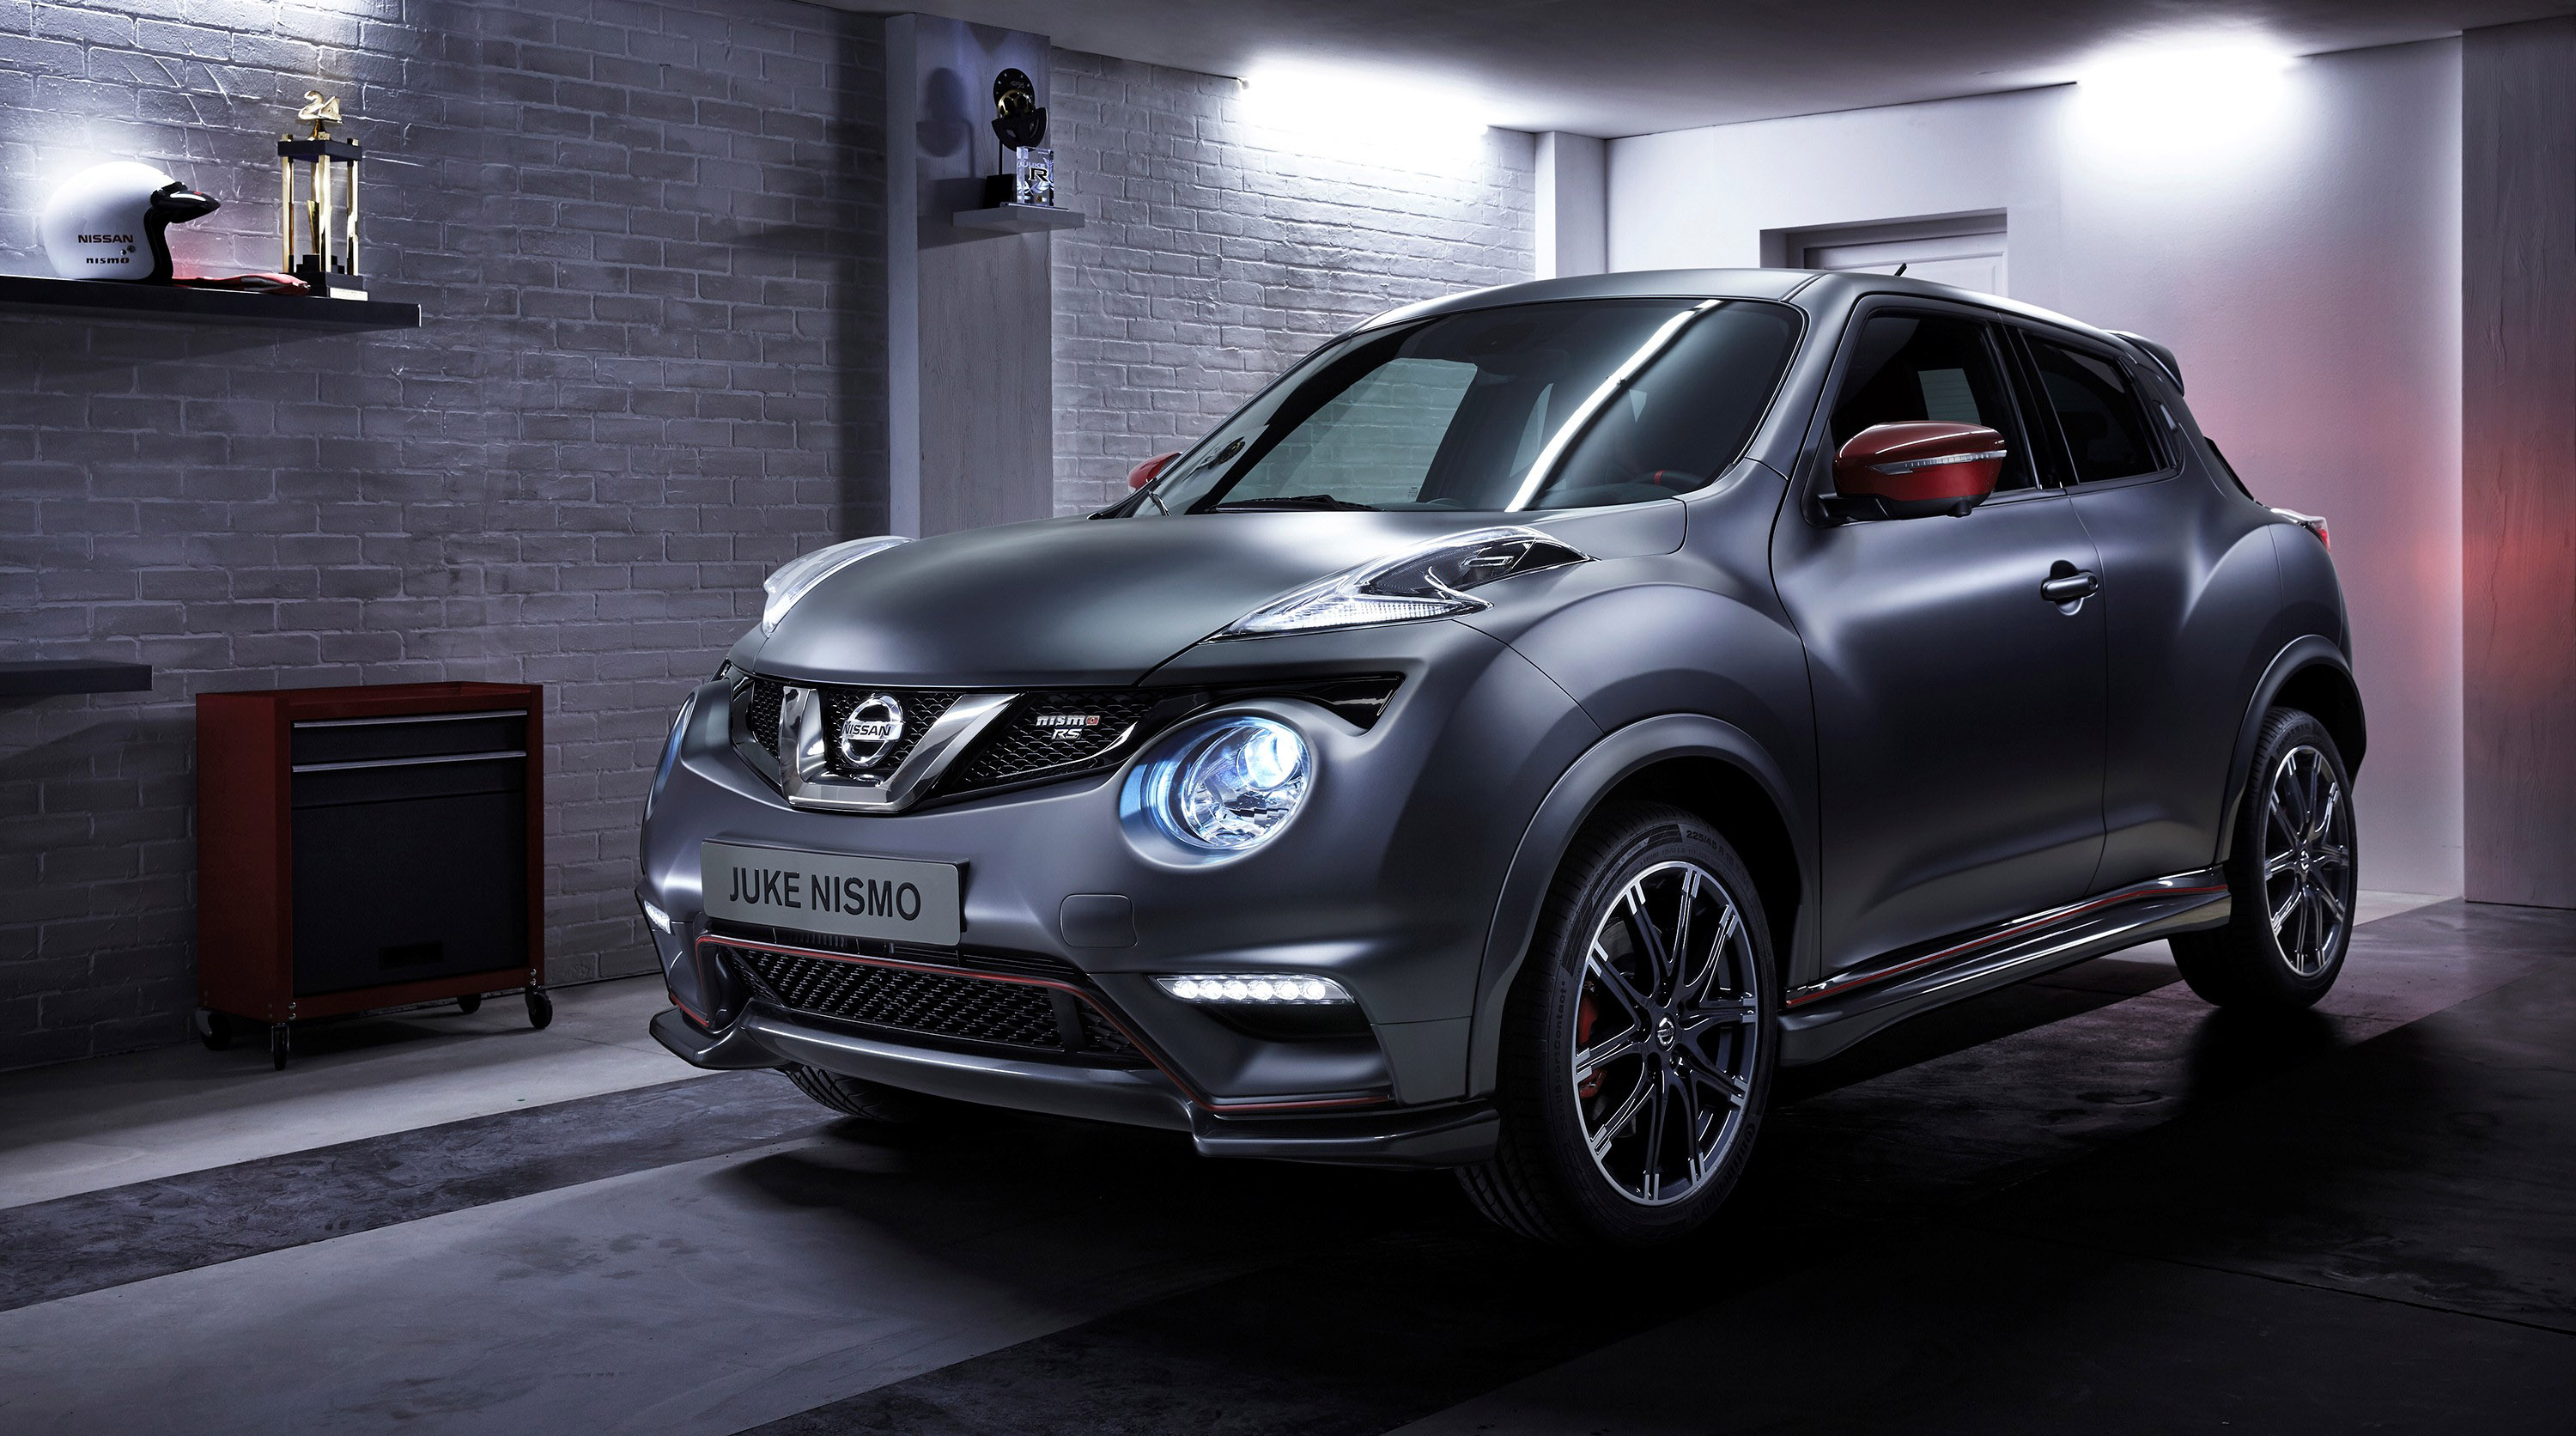 2014 nissan juke nismo rs 218hp and 280nm. Black Bedroom Furniture Sets. Home Design Ideas